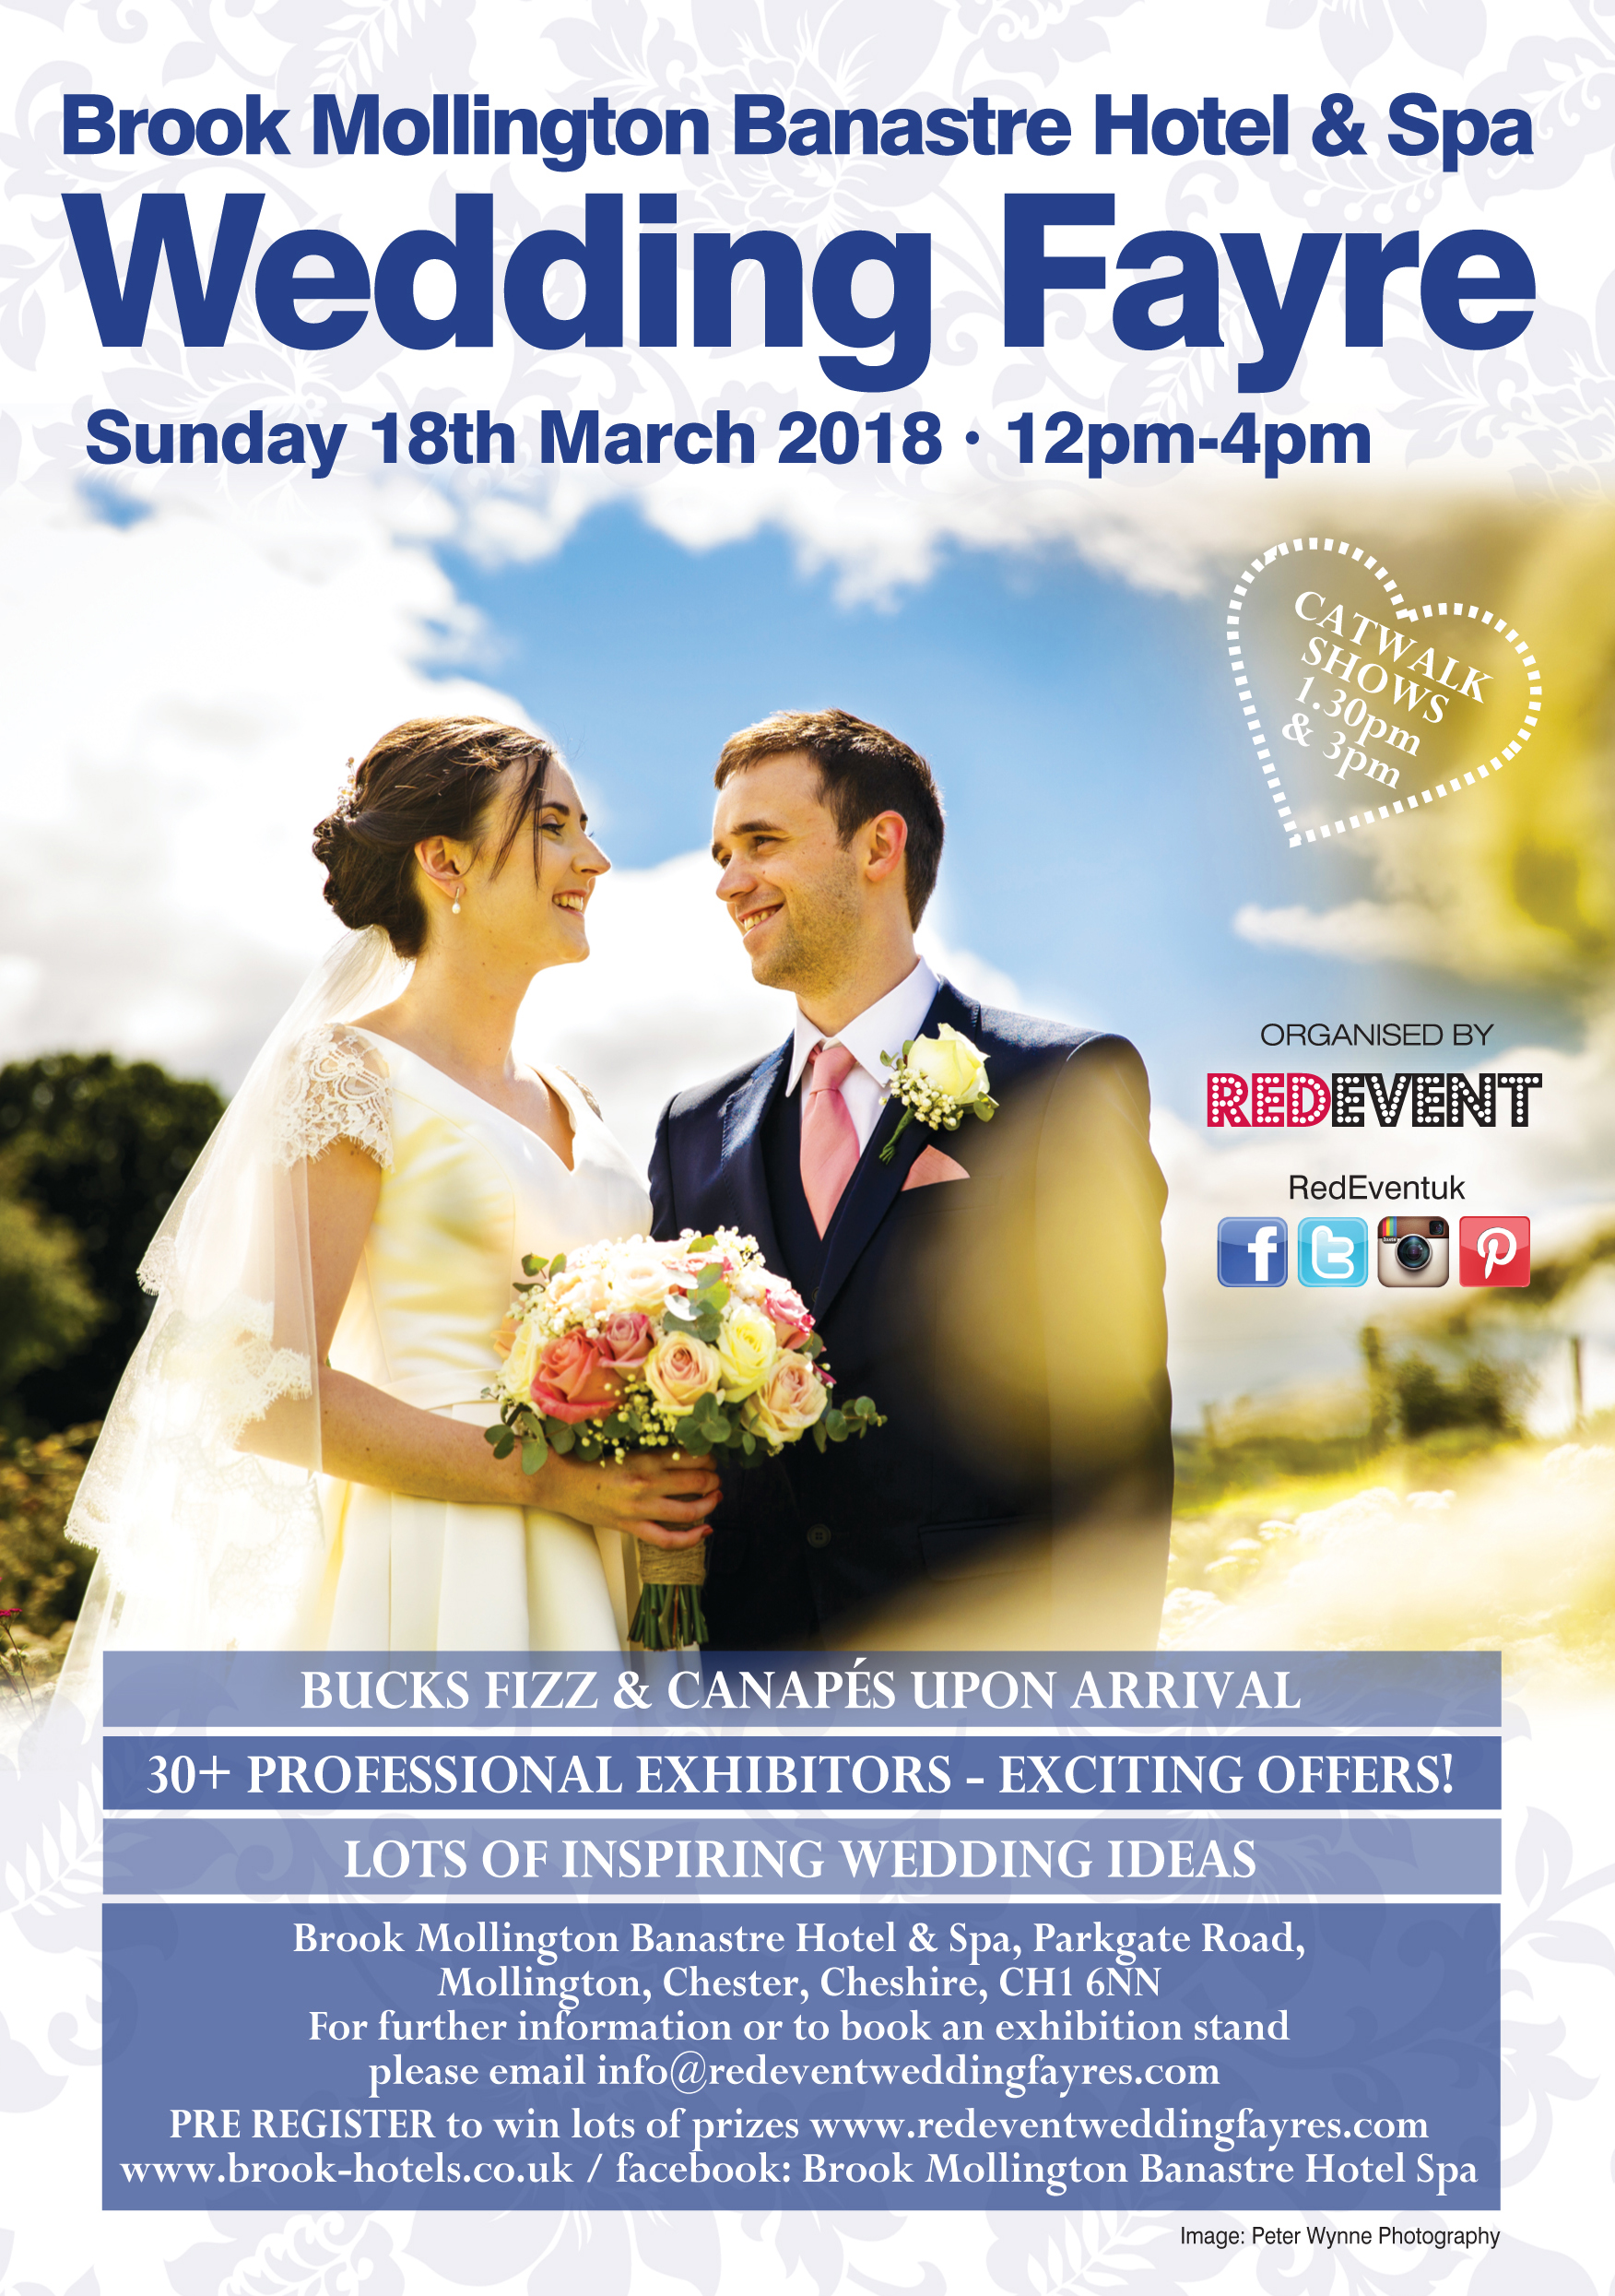 Brook Mollington Banastre Hotel & Spa Wedding Fayre flyer.jpg